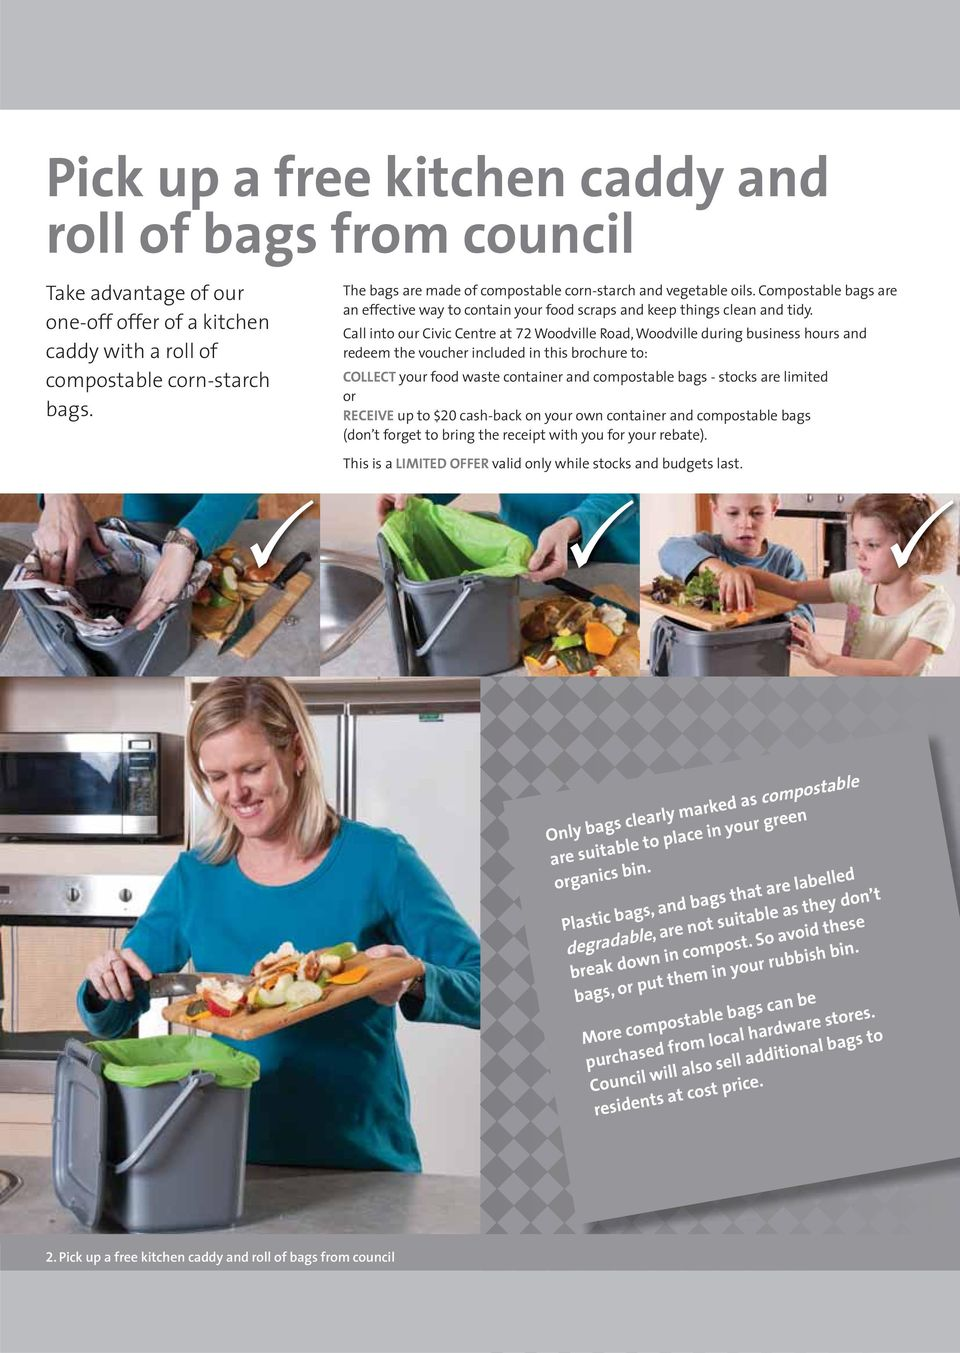 Call into our Civic Centre at 72 Woodville Road, Woodville during business hours and redeem the voucher included in this brochure to: COLLECT your food waste container and compostable bags - stocks